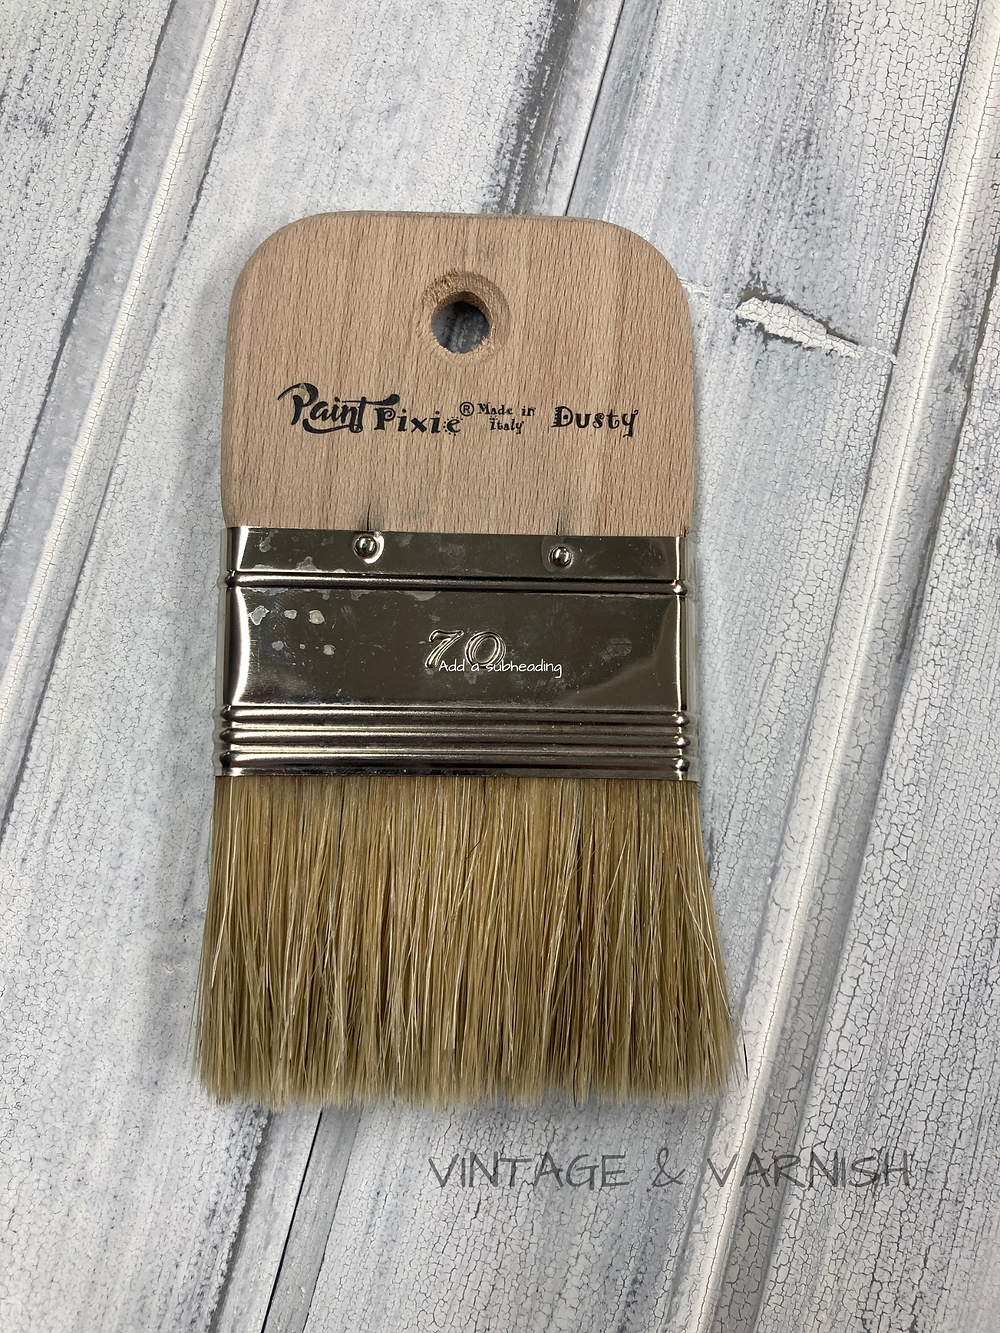 vintage-and-varnish-blog-best-paint-brush-for-painting-furniture-paint-pixie-dusty